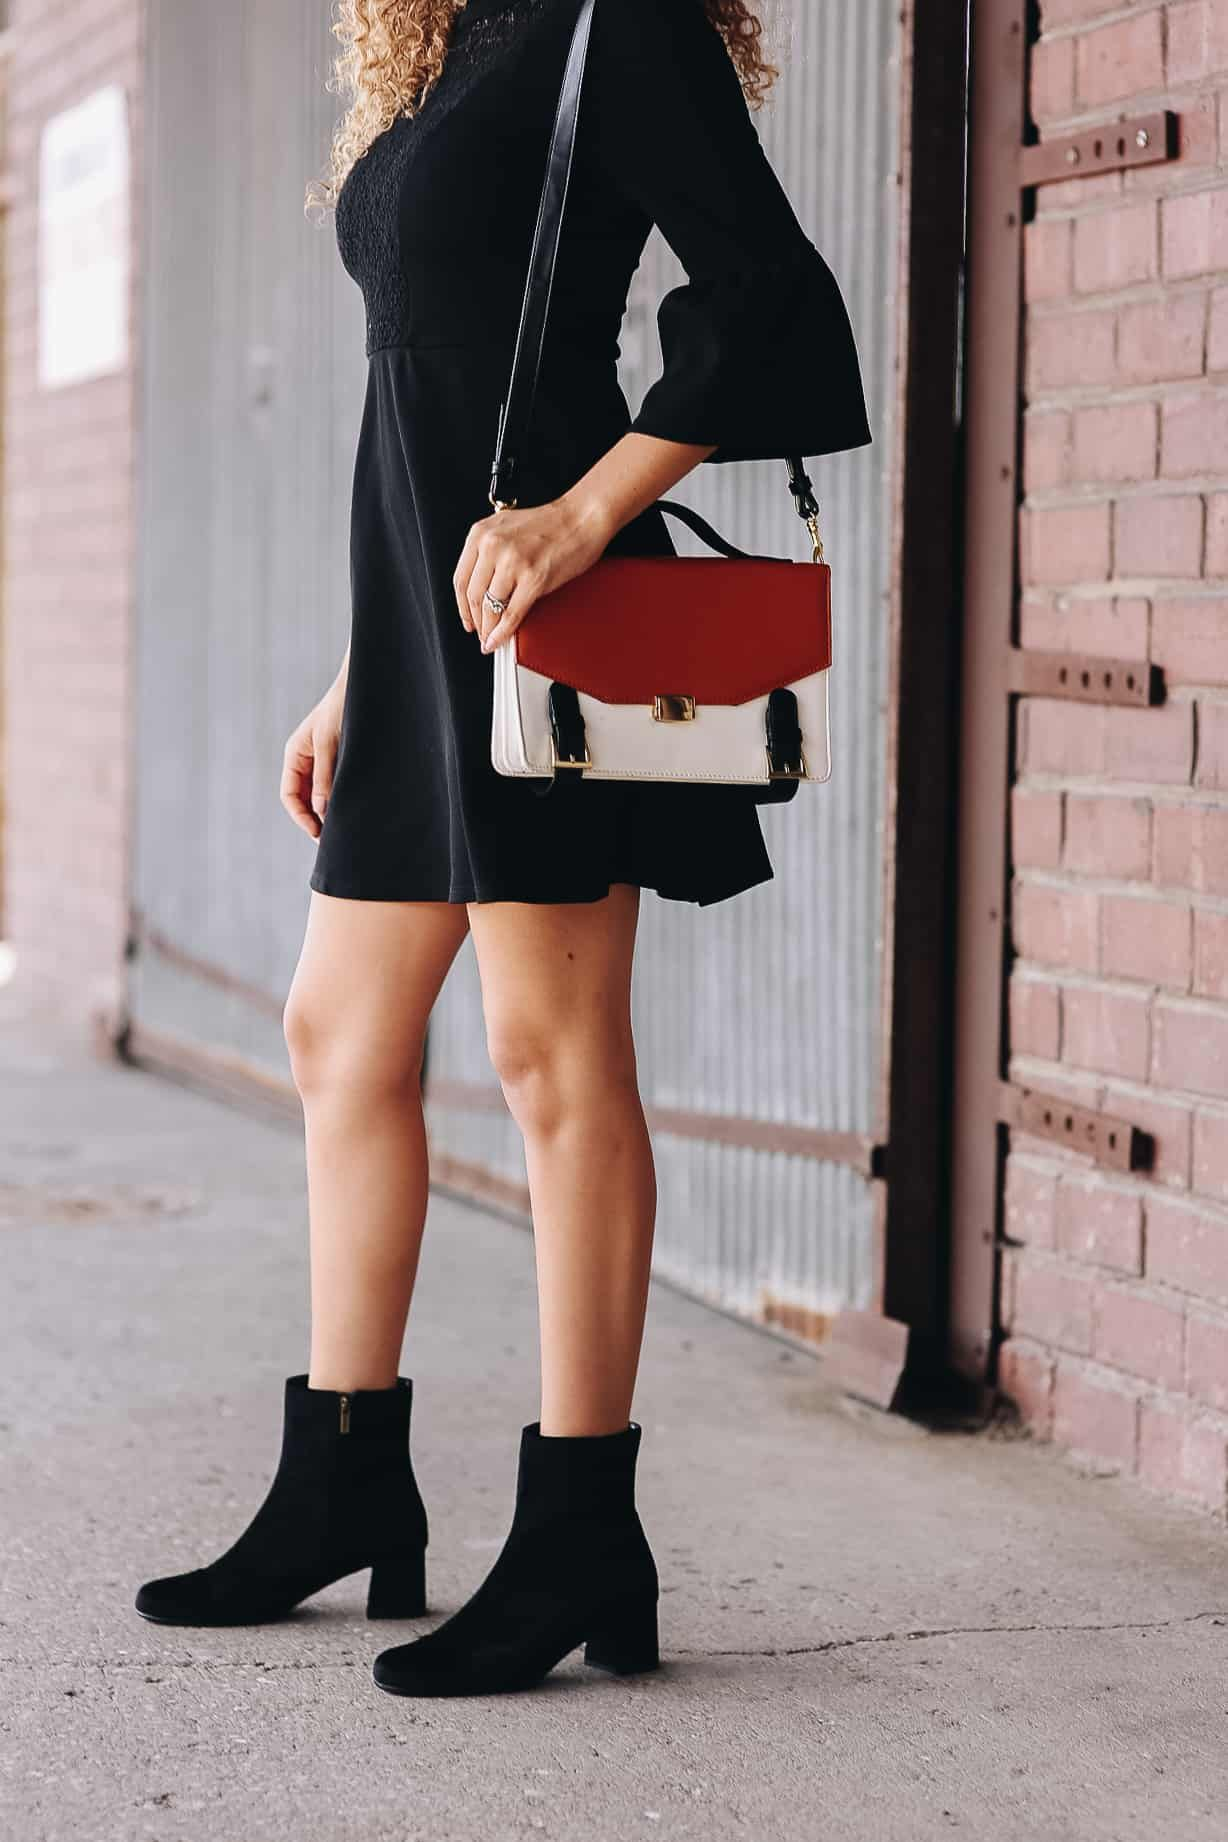 1b0f39b88f1 1 Pair of Ankle Boots, 3 Ways | shoes + accessories. | Ankle boots ...